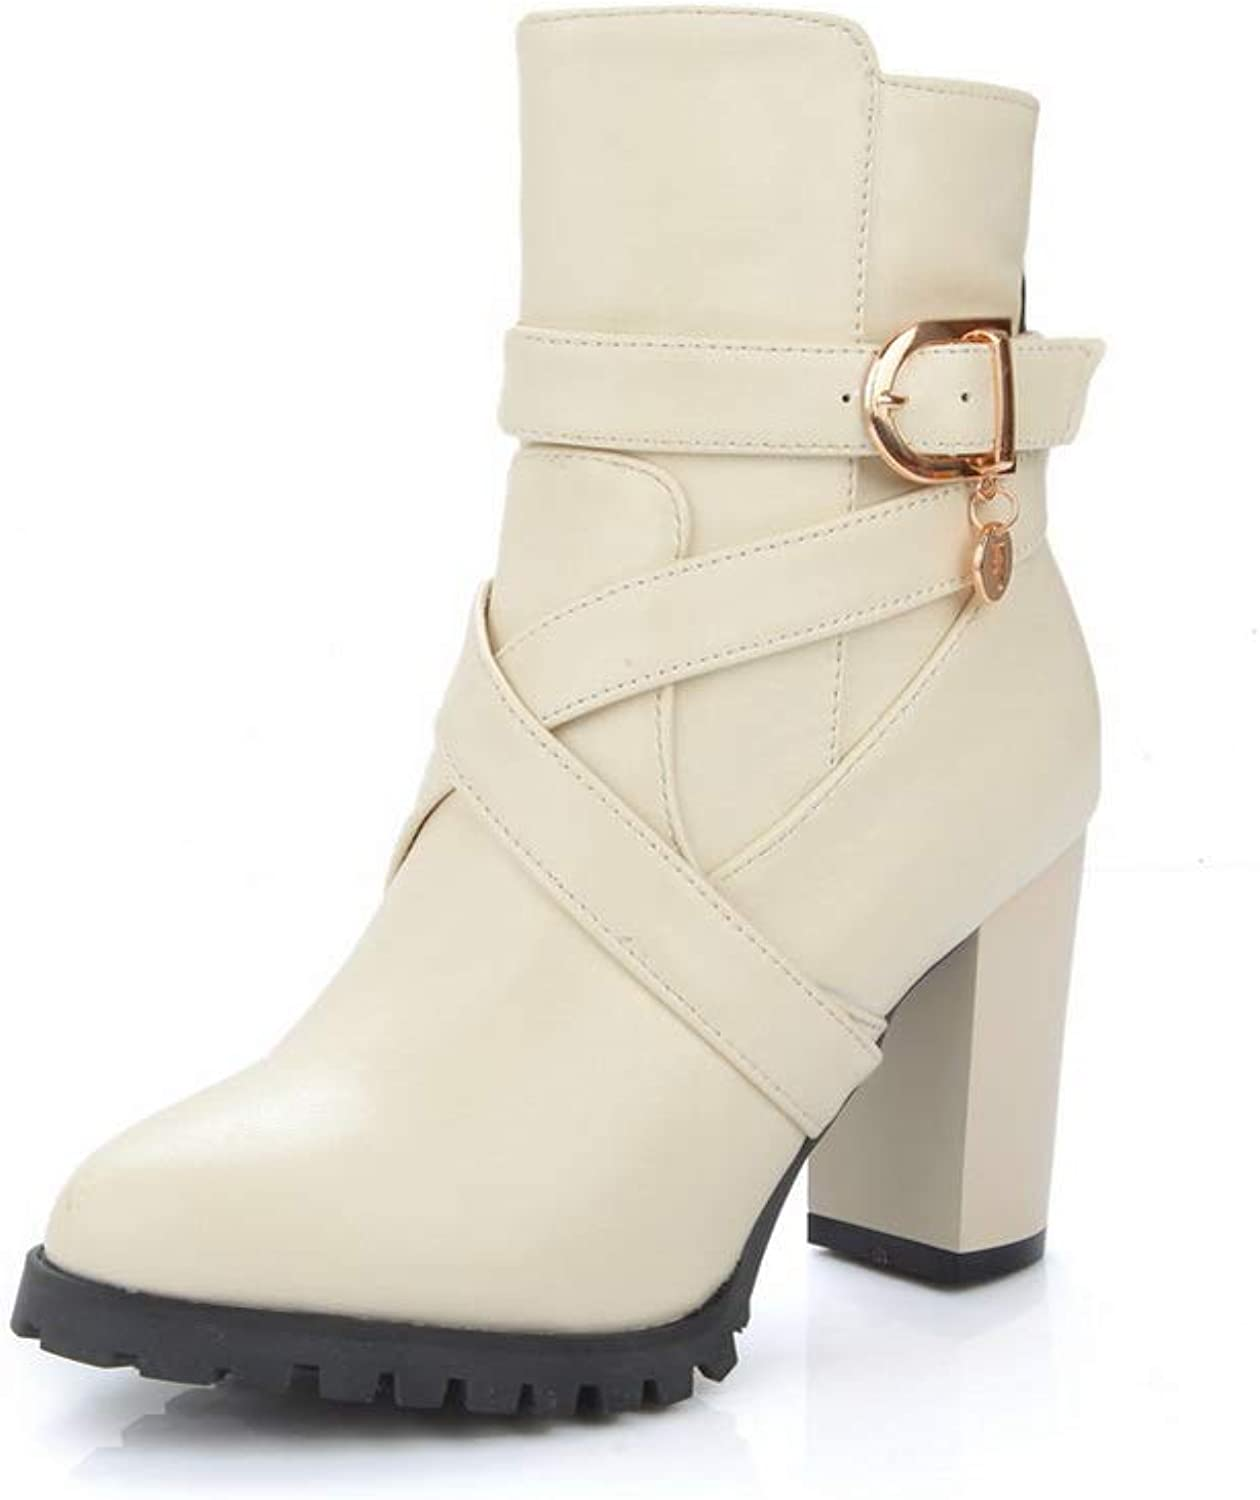 1TO9 Womens Bucket-Style Fashion Solid Urethane Boots MNS03155